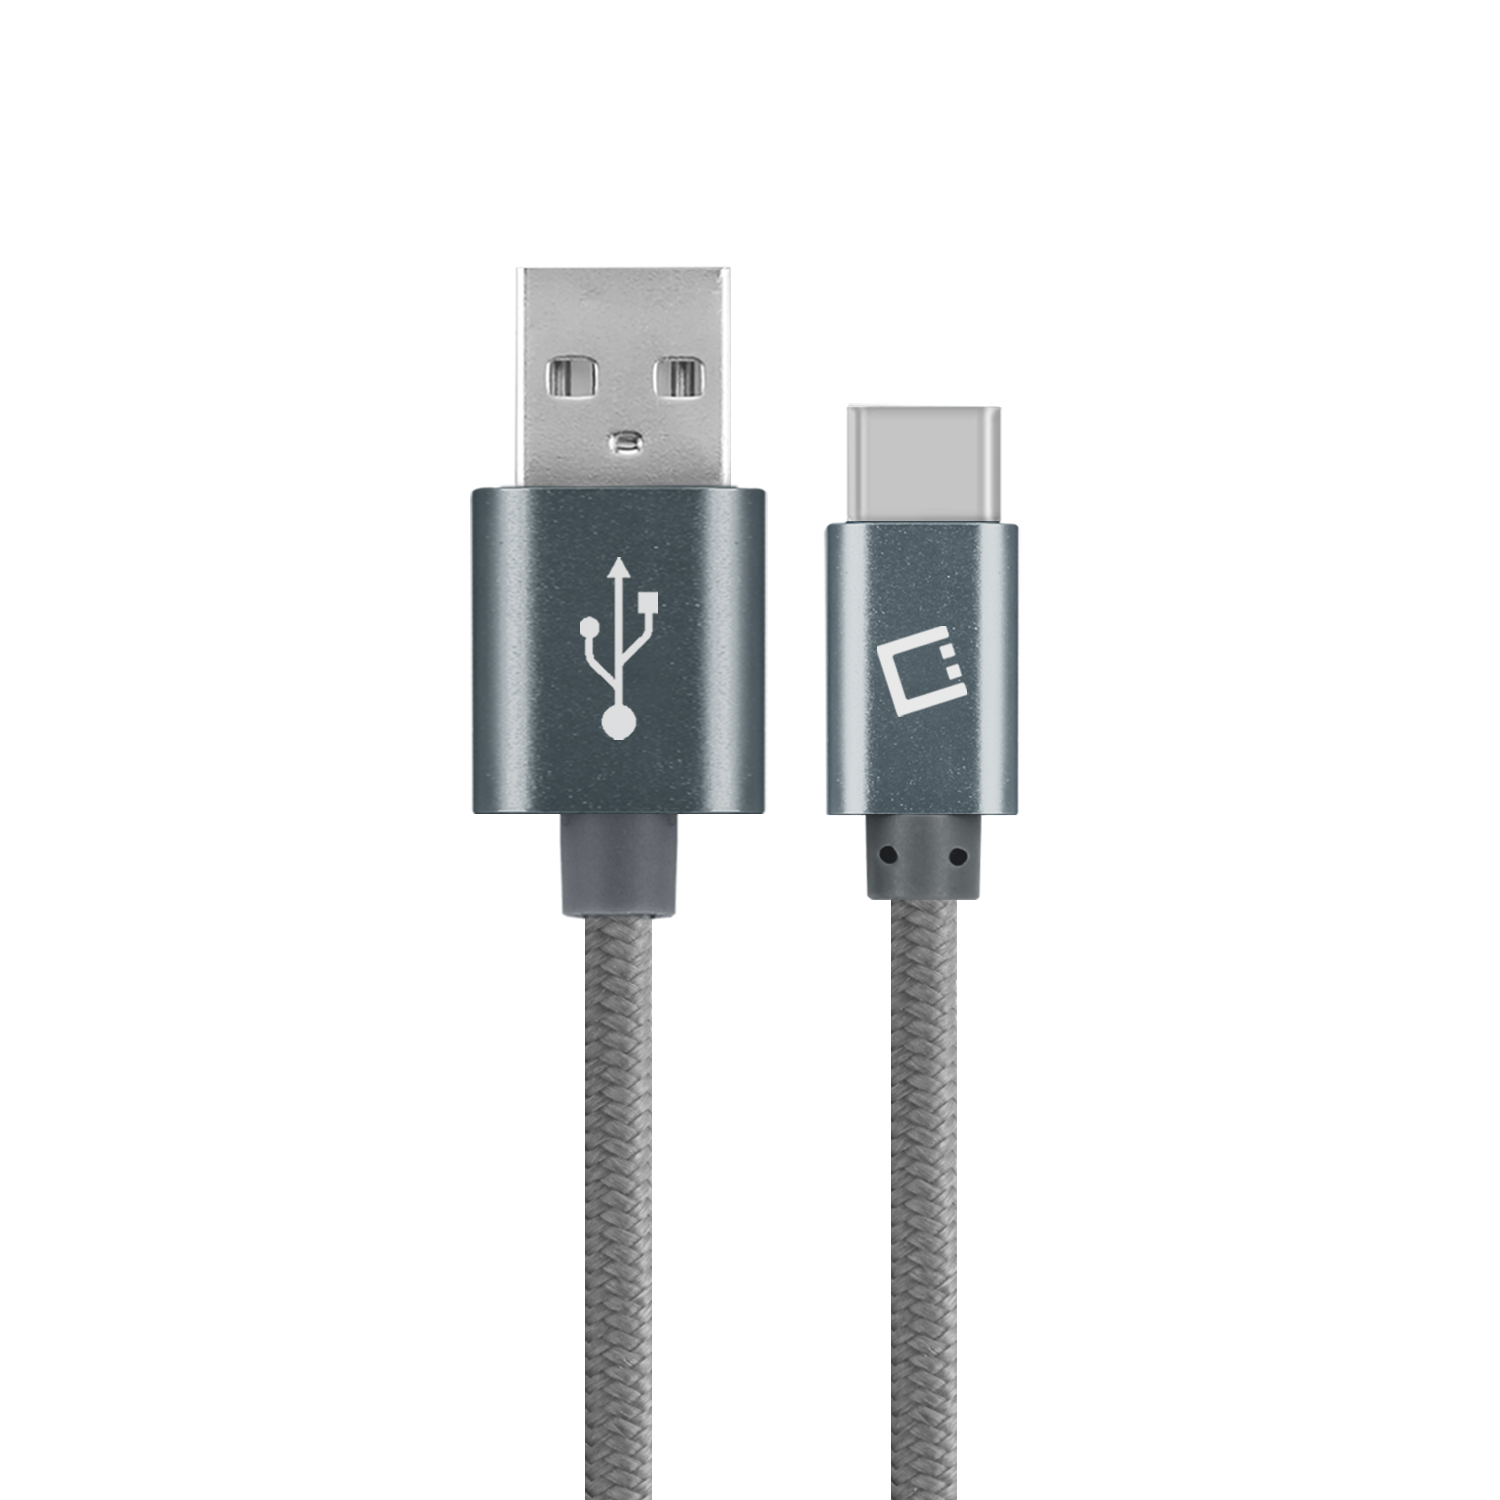 Samsung Galaxy Fold USB Type-C To Type-A Braided Data Power Cable Grey 10ft Braided